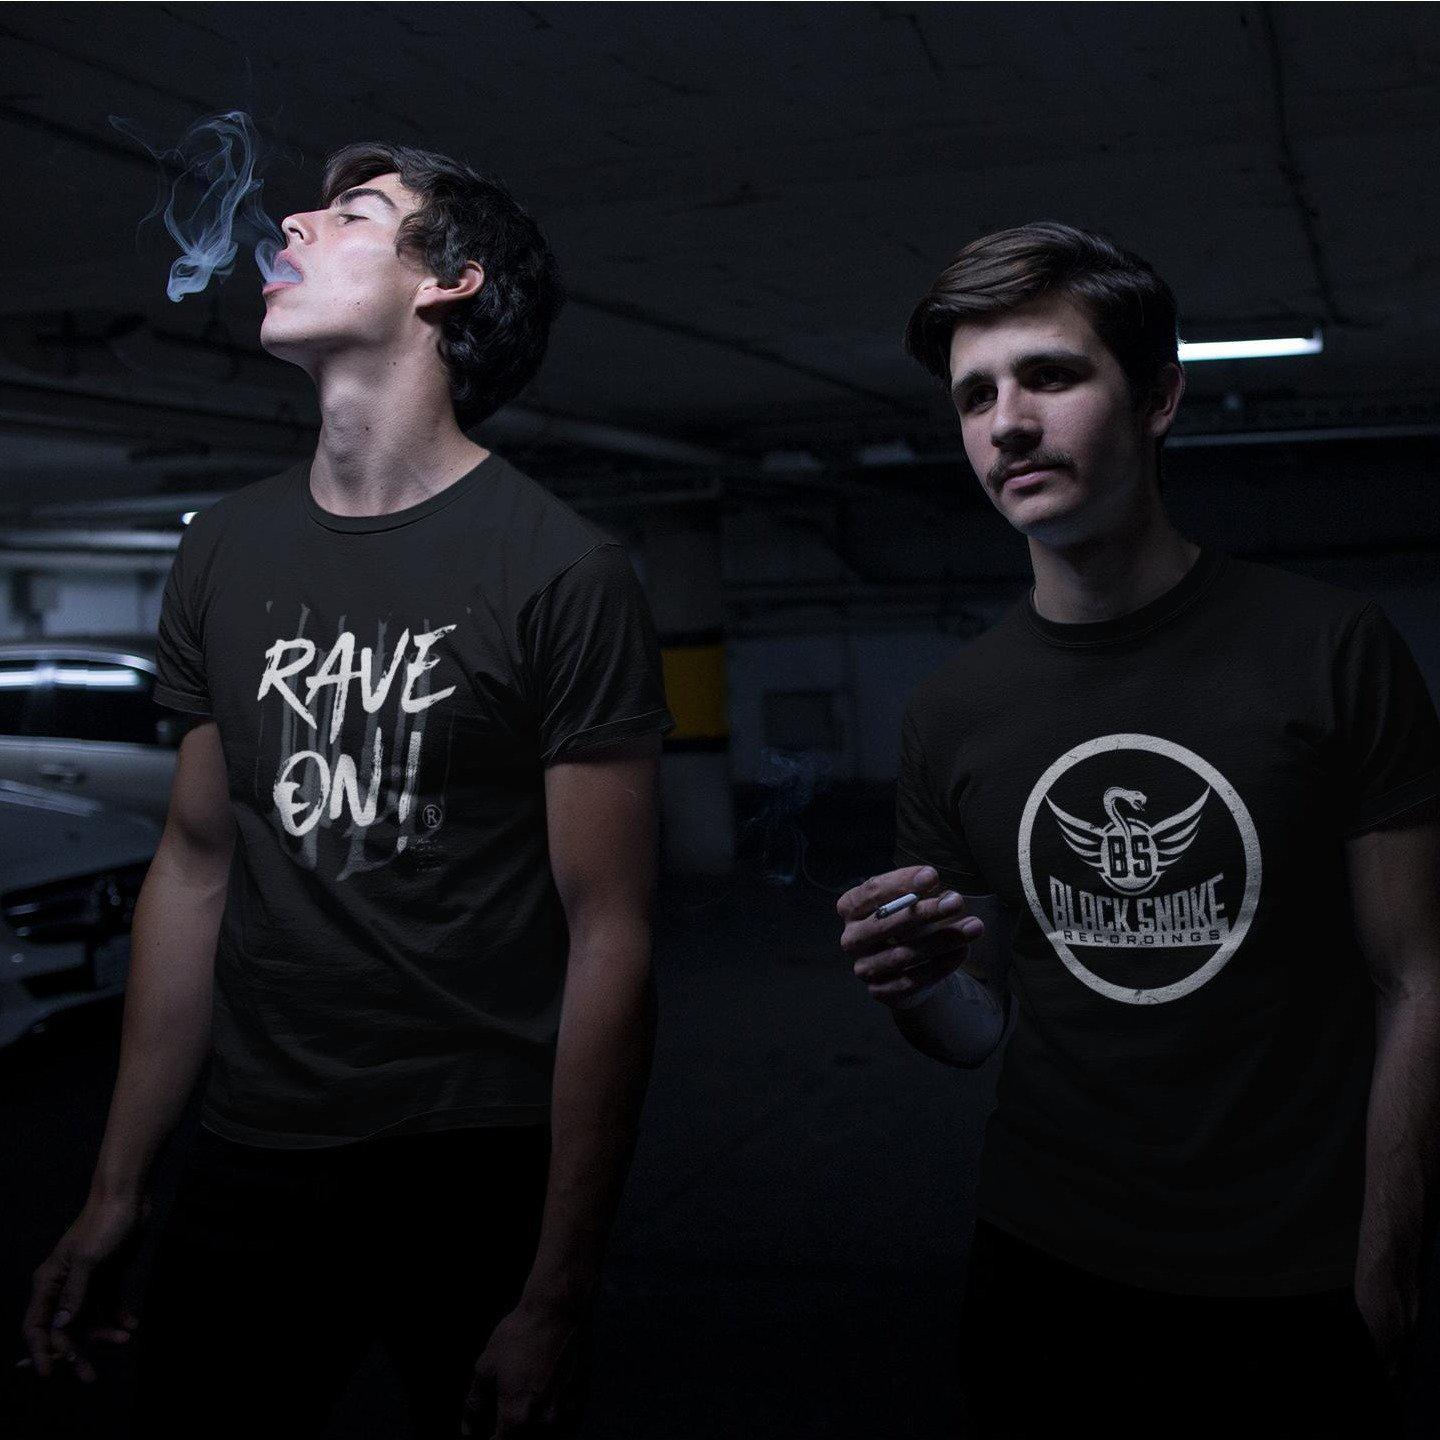 Rave On!® - Made On Planet Earth B2k20 - Herren Premiumshirt-Herren Premium Shirt-Rave-On! I www.rave-on.shop I Deine Rave & Techno Szene Shop I brand, Design - Rave On!® - Made On Planet Earth B2k20, Global recommendation, madeonpr, marke, on, rave, raver, techno - Sexy Festival Streetwear , Clubwear & Raver Style